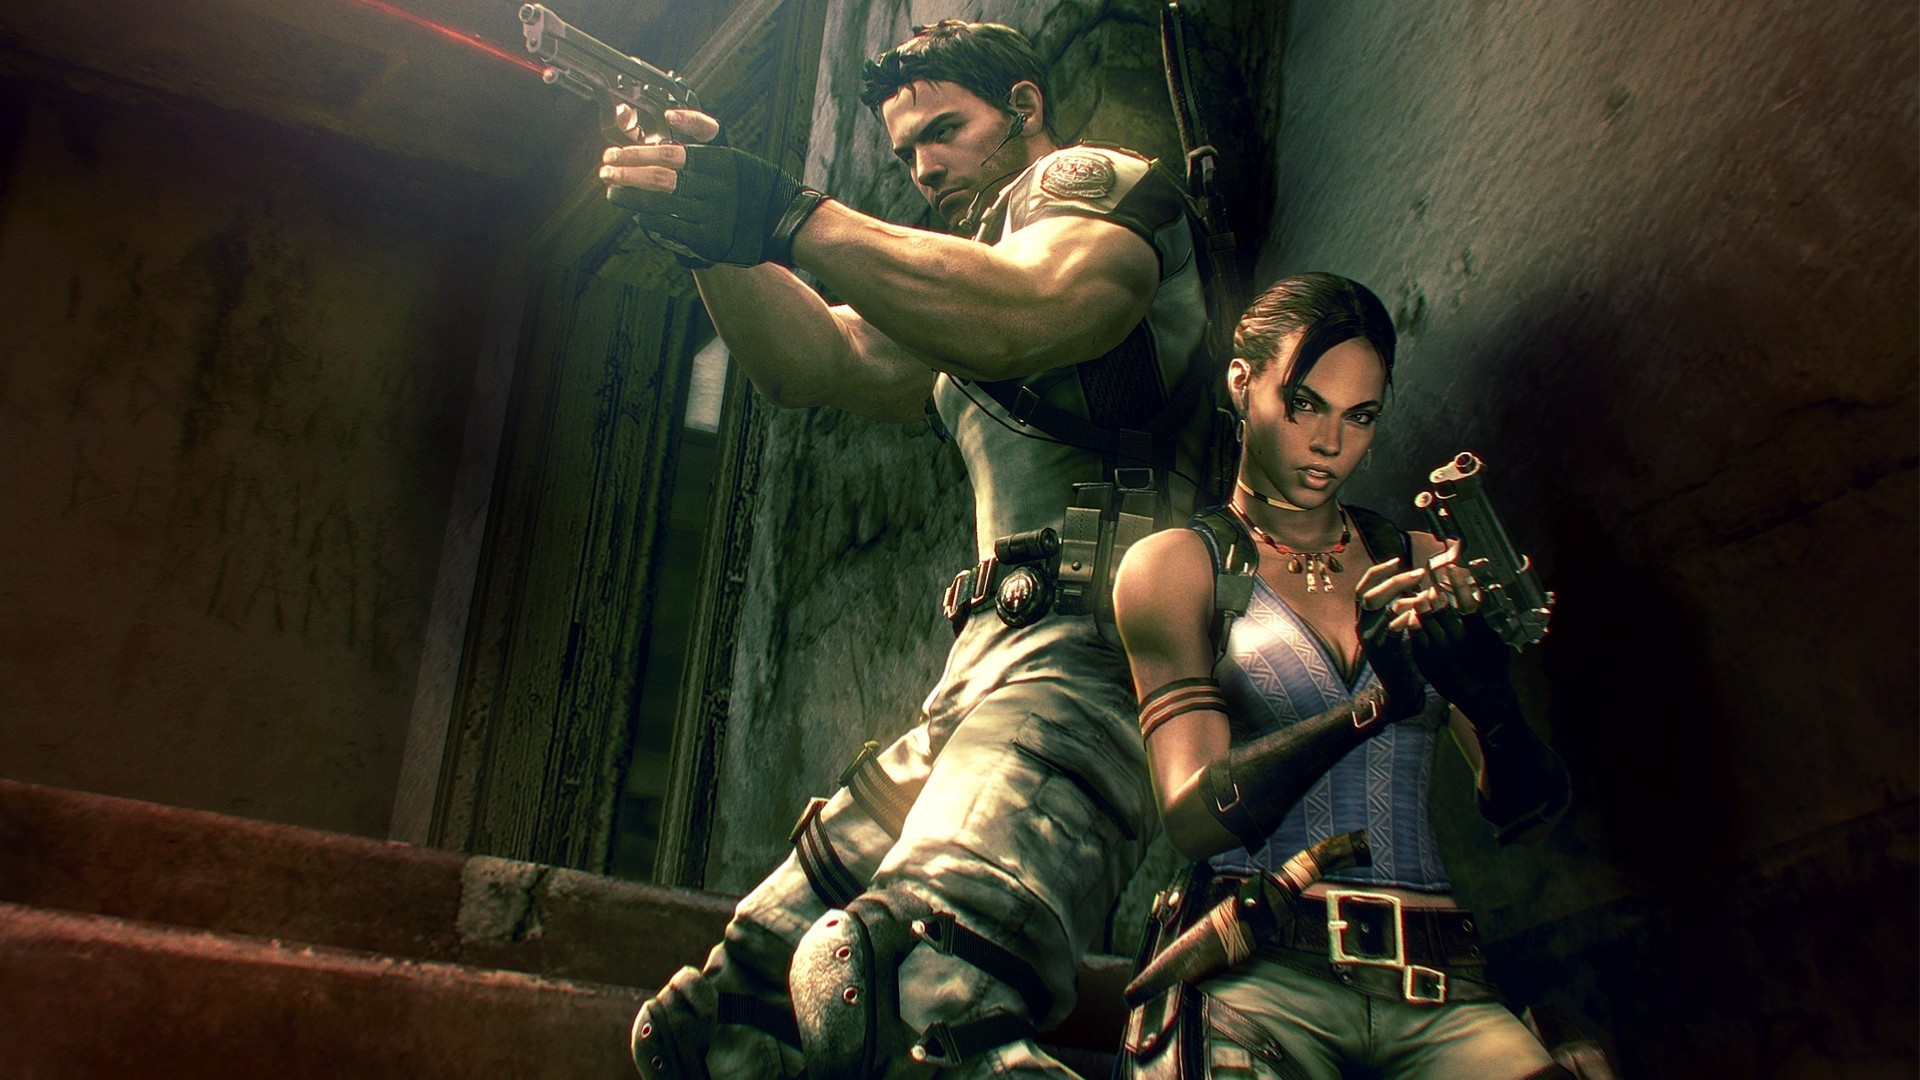 video games Resident Evil HD Wallpaper